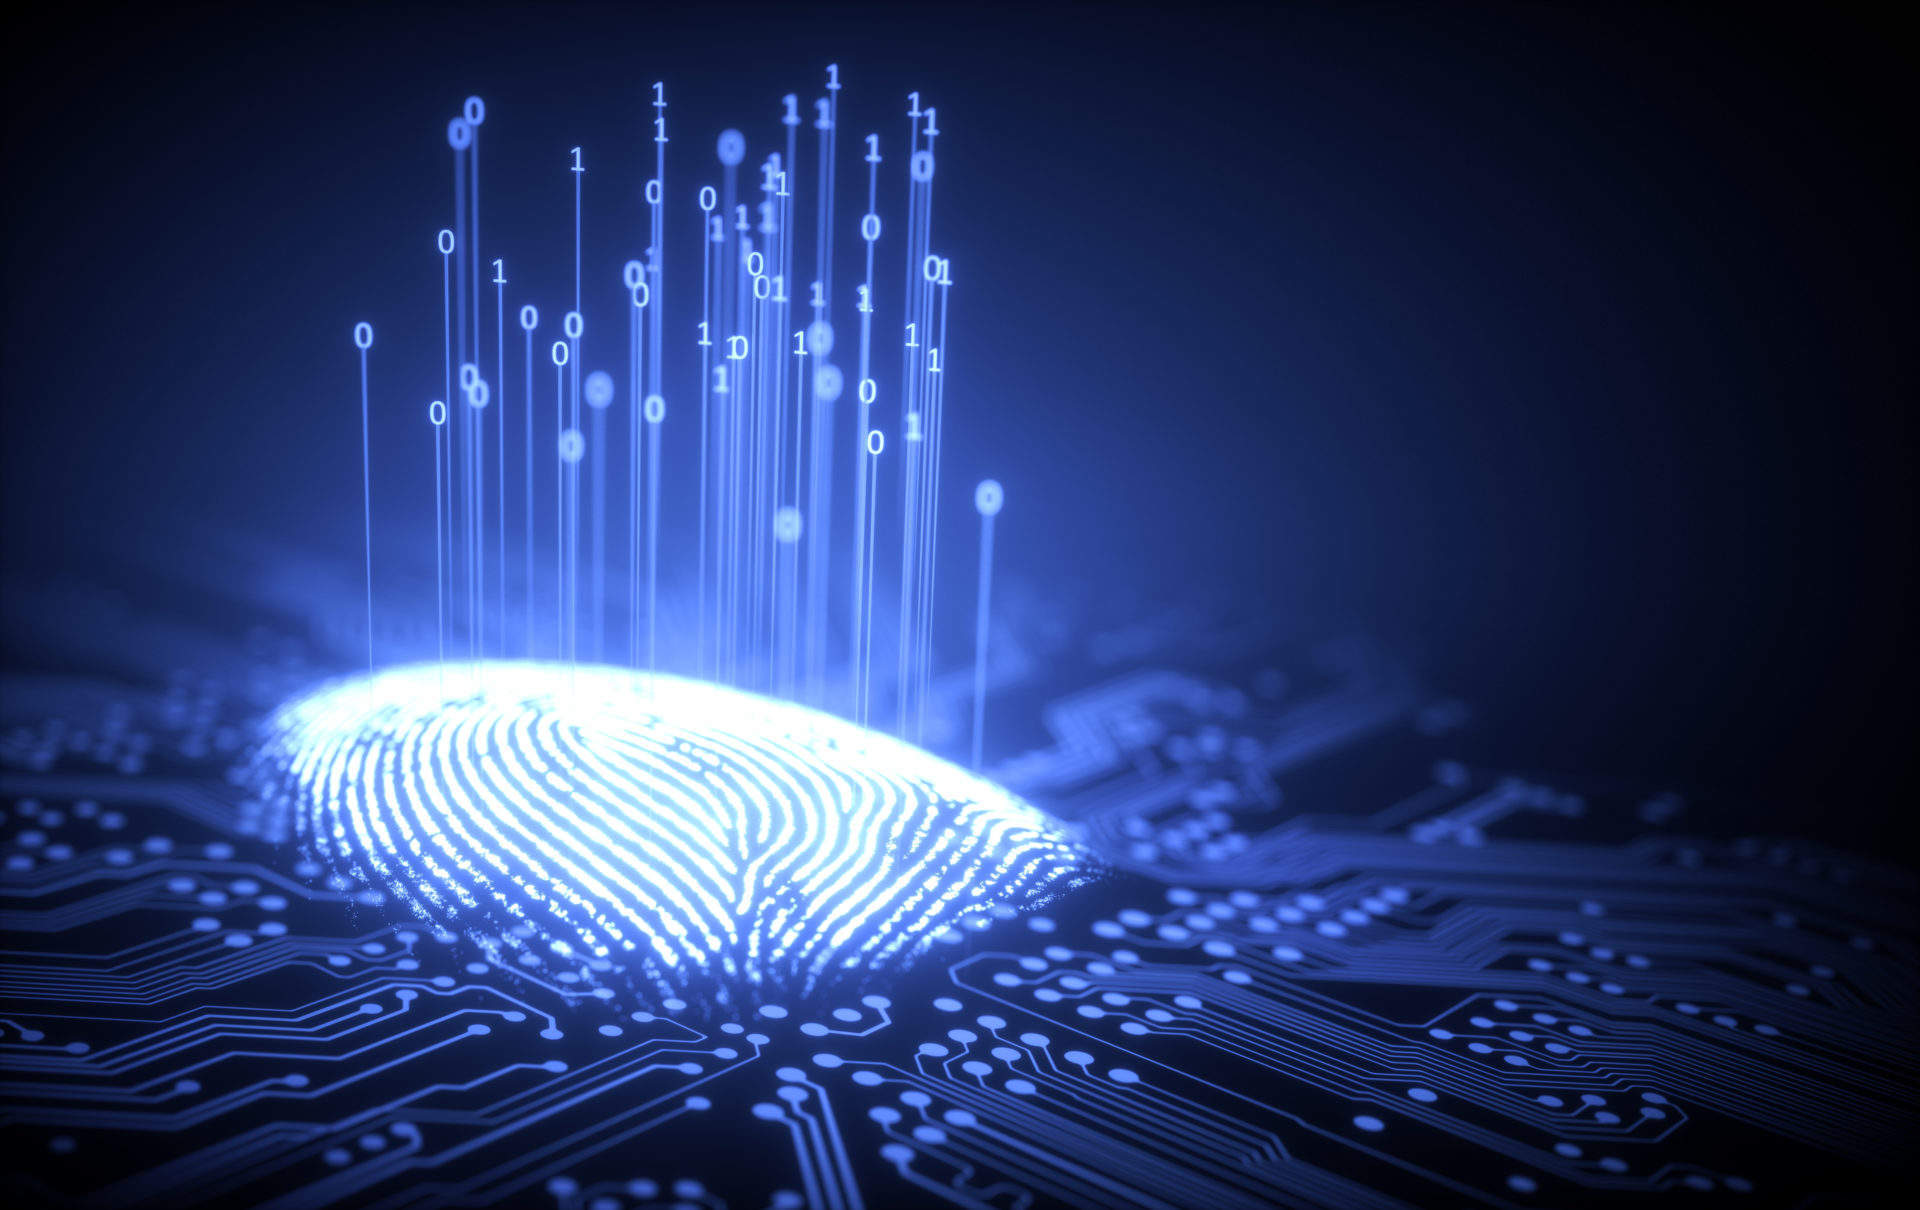 Biometric device revenues plunge by a fifth due to Covid-19